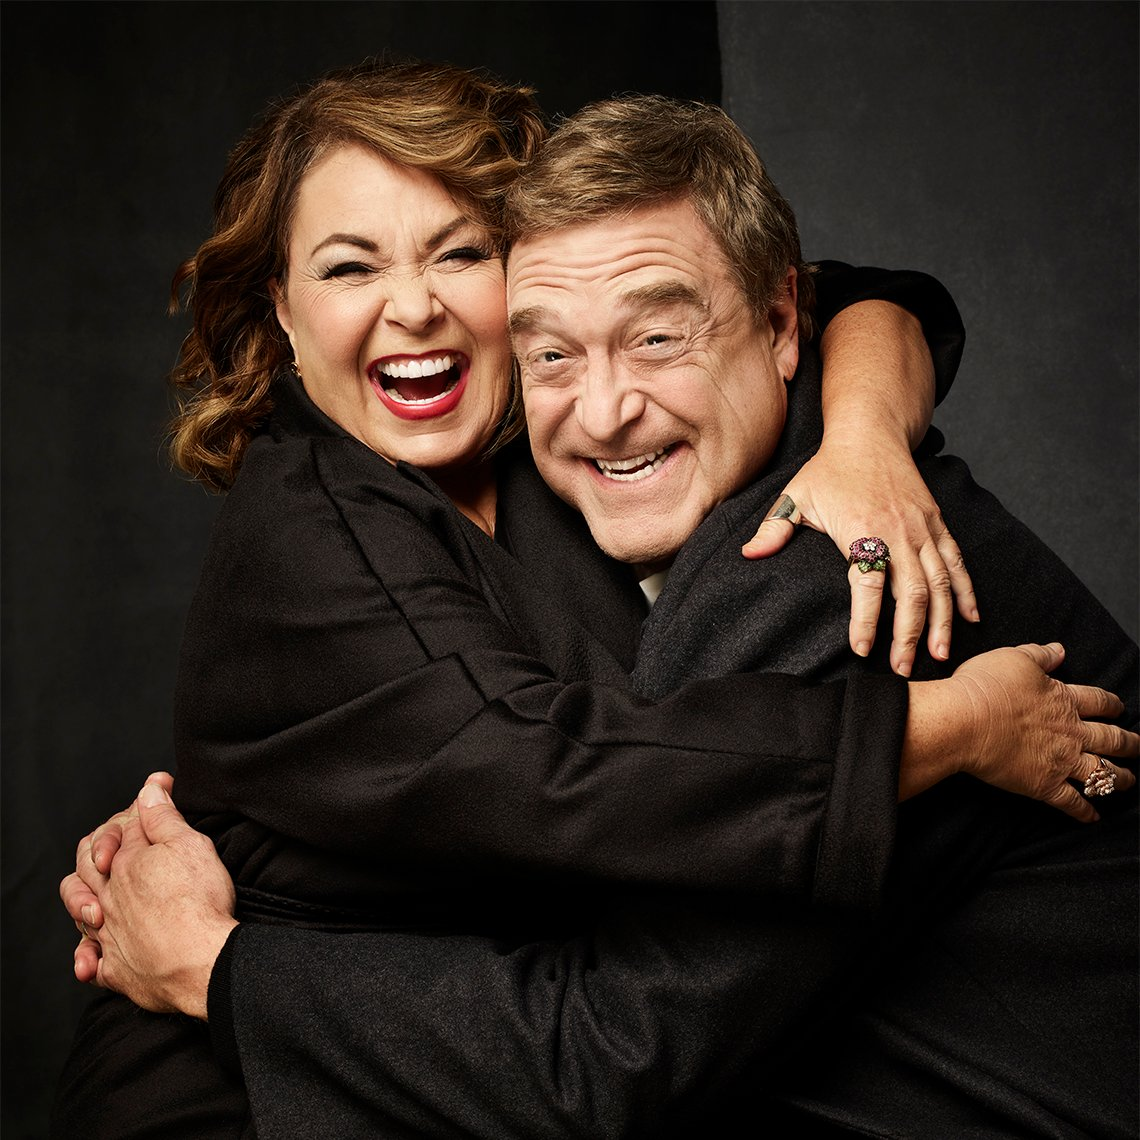 Roseanne Barr and John Goodman laughing and hugging each other